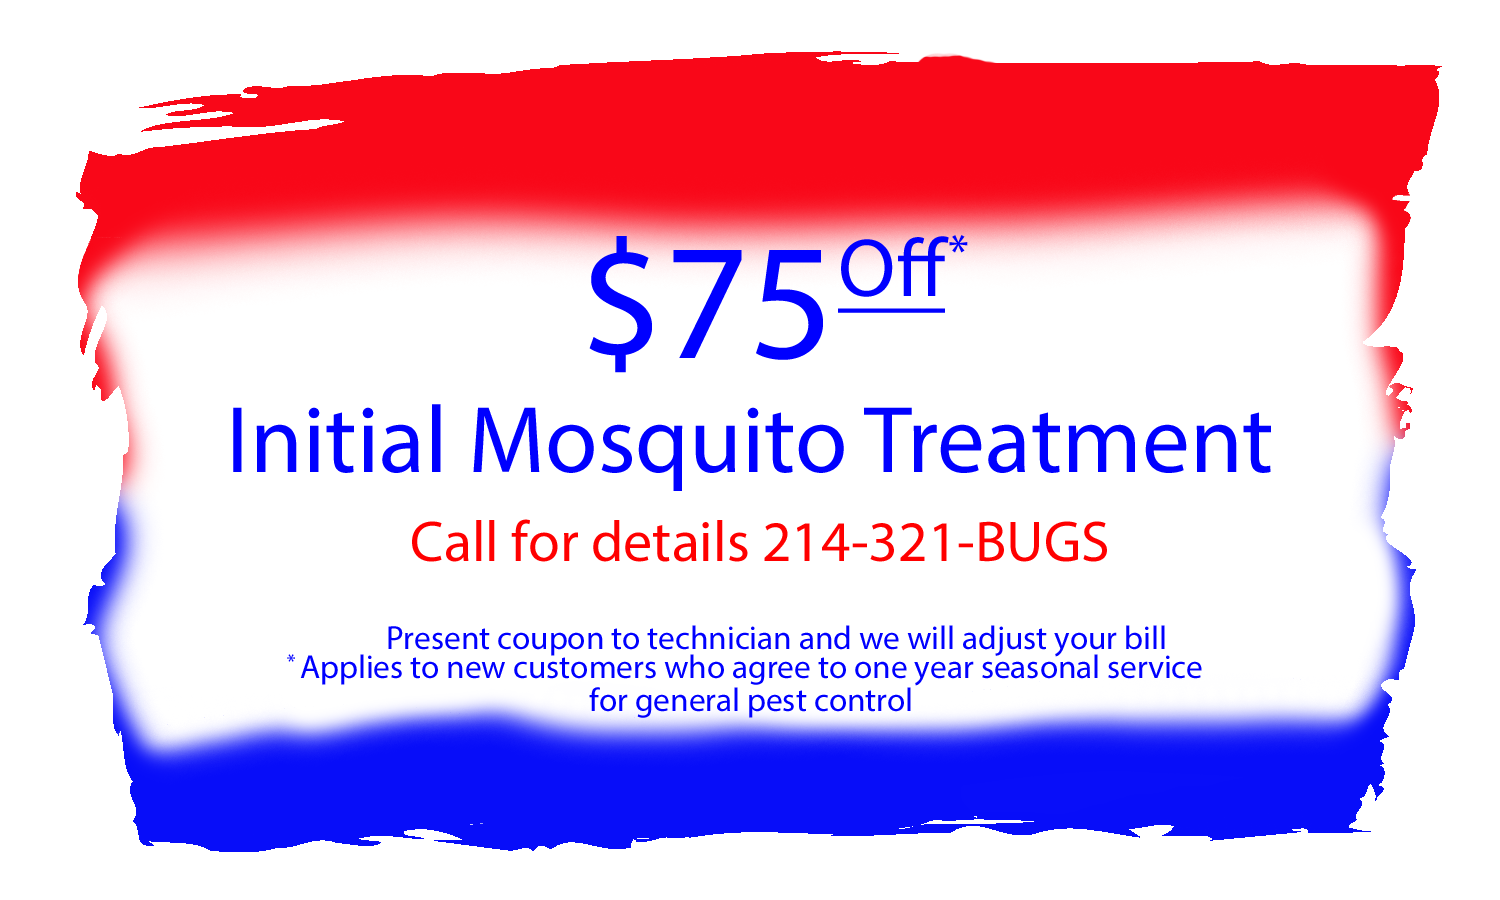 Mosquito Pest Control Coupon